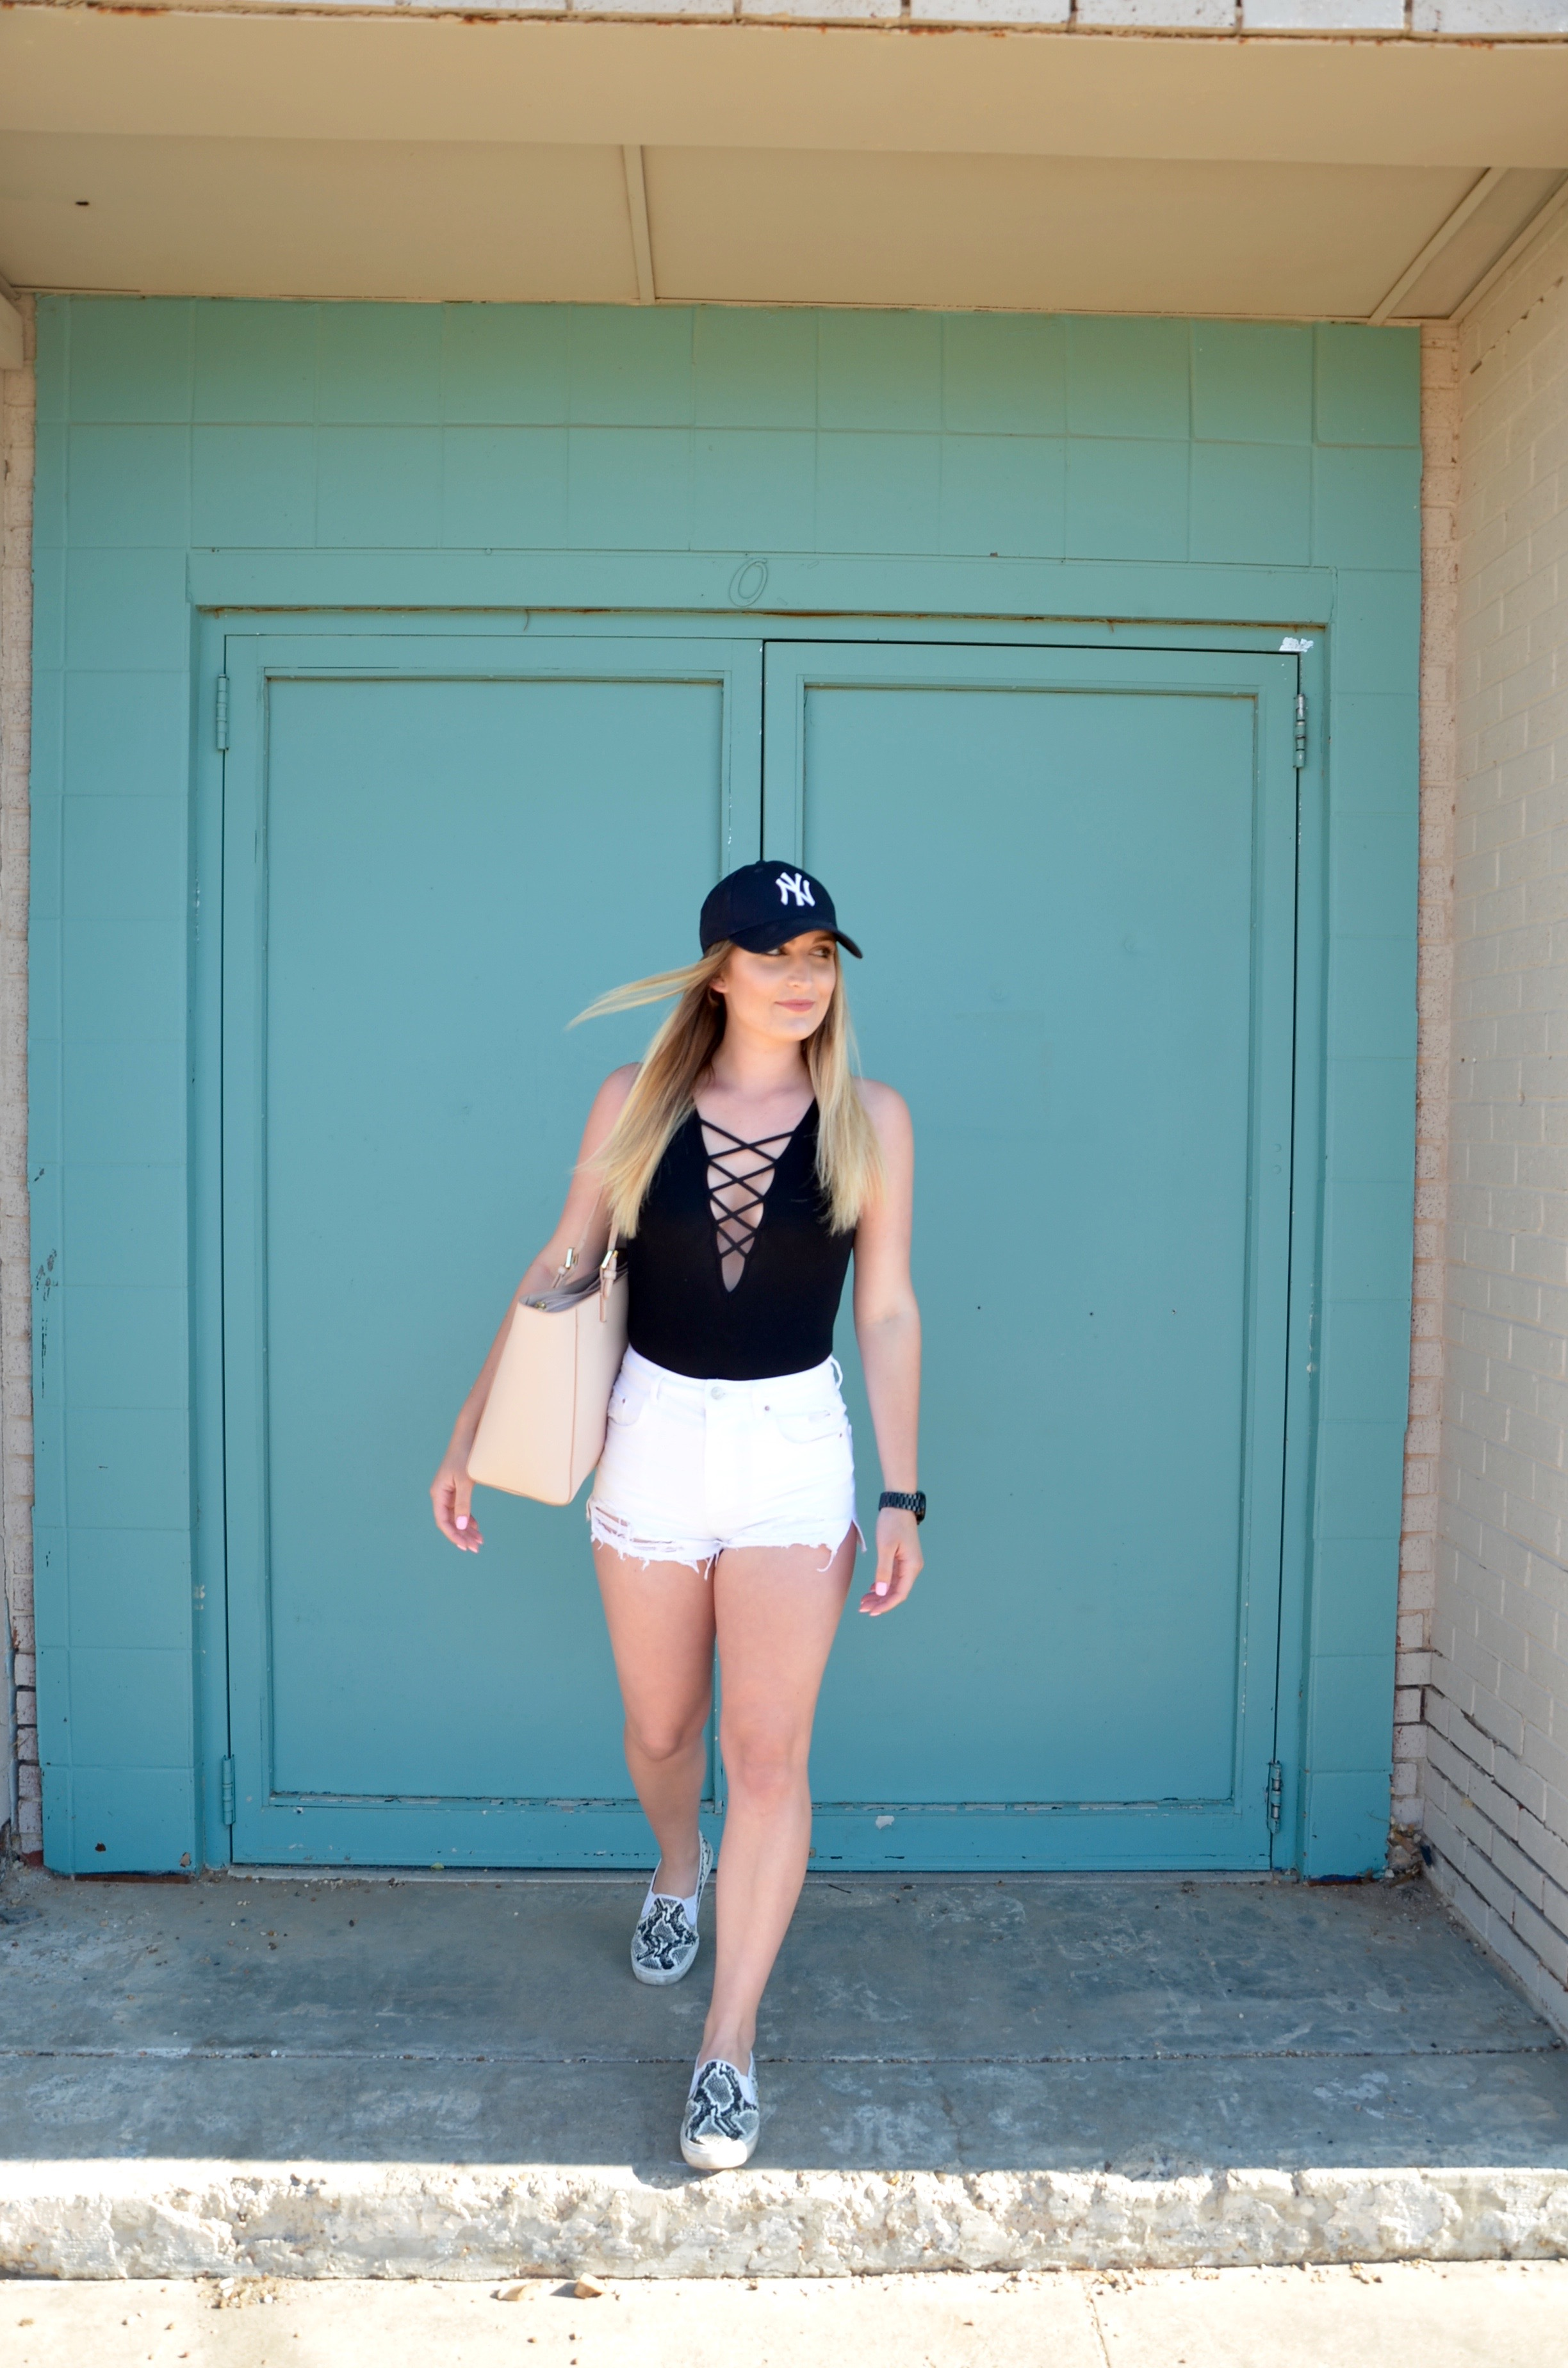 tiptop travel outfit - Travel Outfit Of The Day by popular Texas style blogger Audrey Madison Stowe